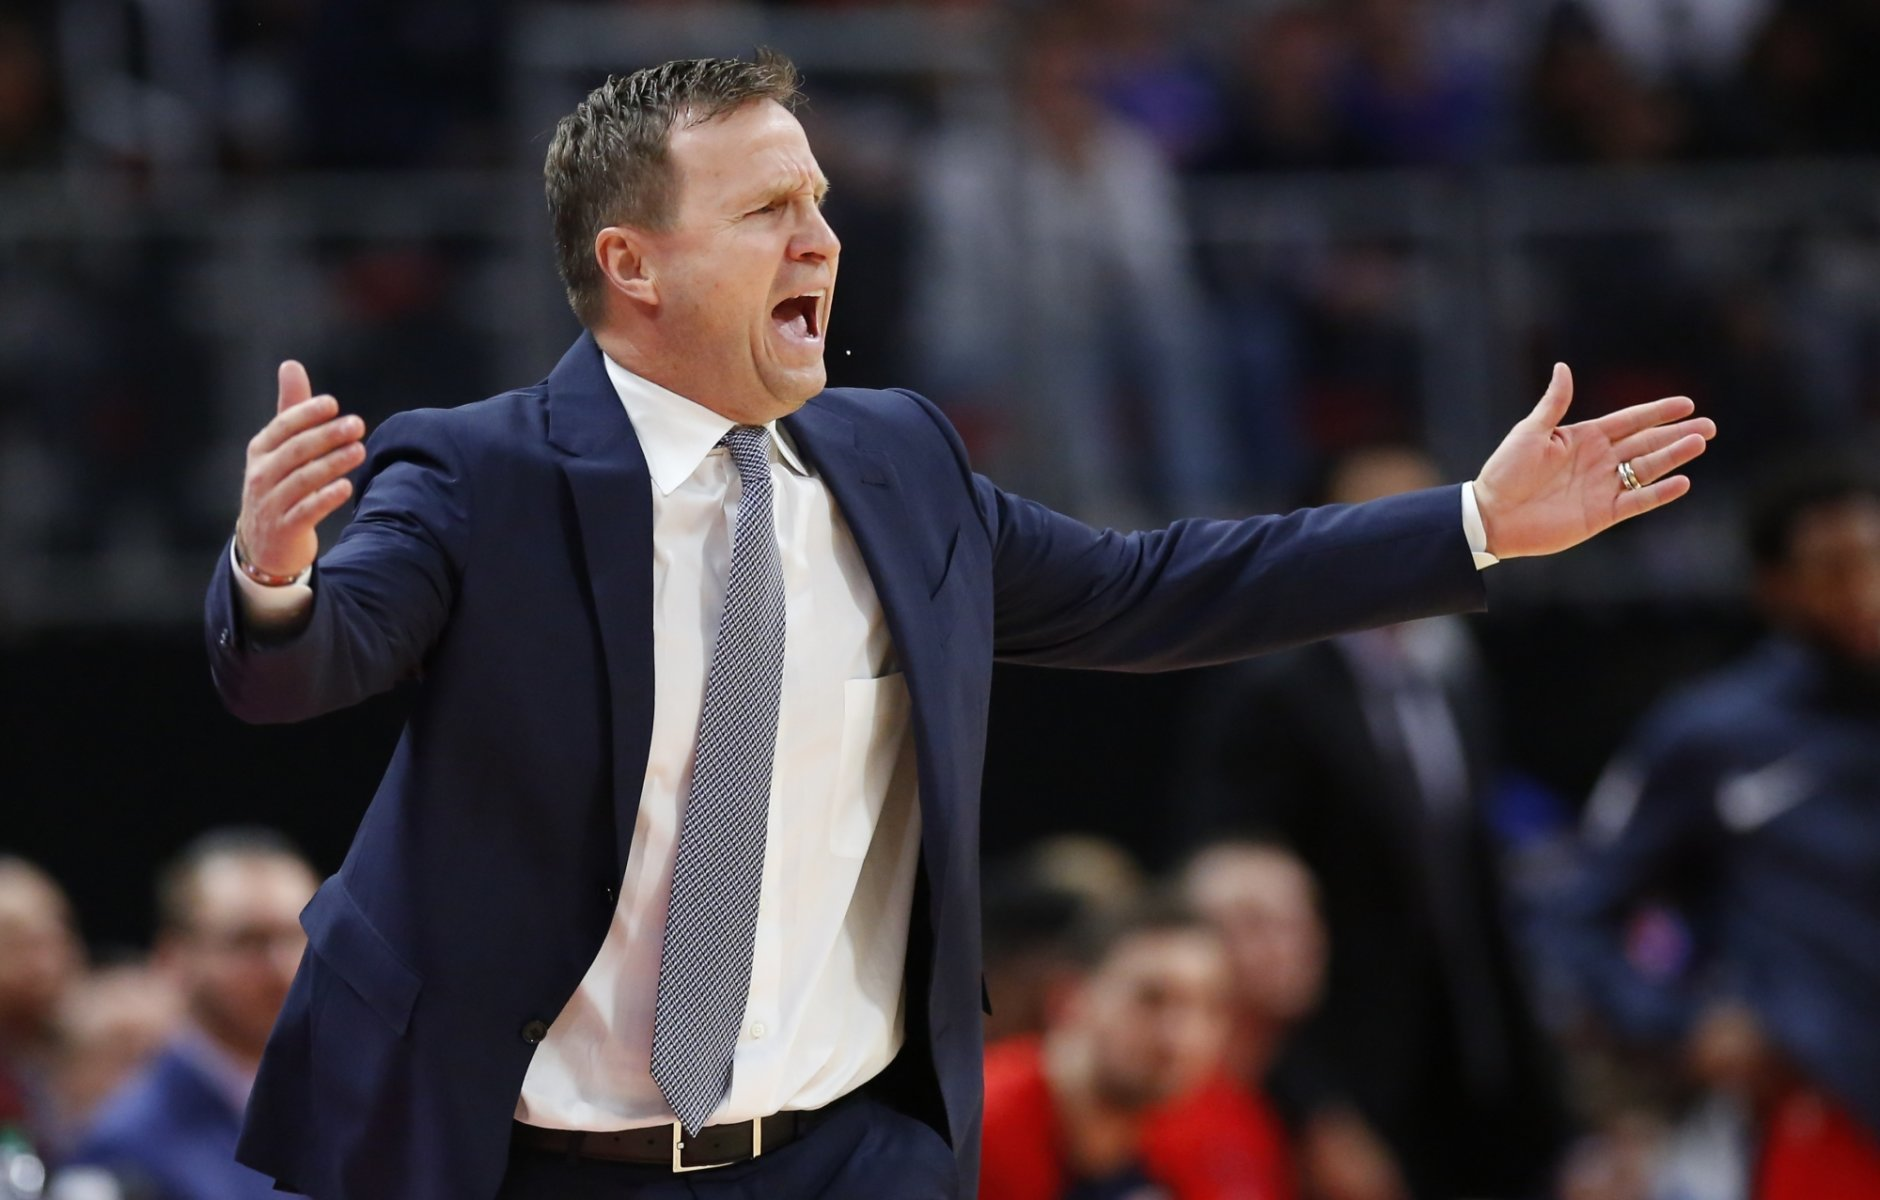 Washington Wizards head coach Scott Brooks yells out the officials during the first half of an NBA basketball game against the Detroit Pistons Wednesday, Dec. 26, 2018, in Detroit. (AP Photo/Duane Burleson)